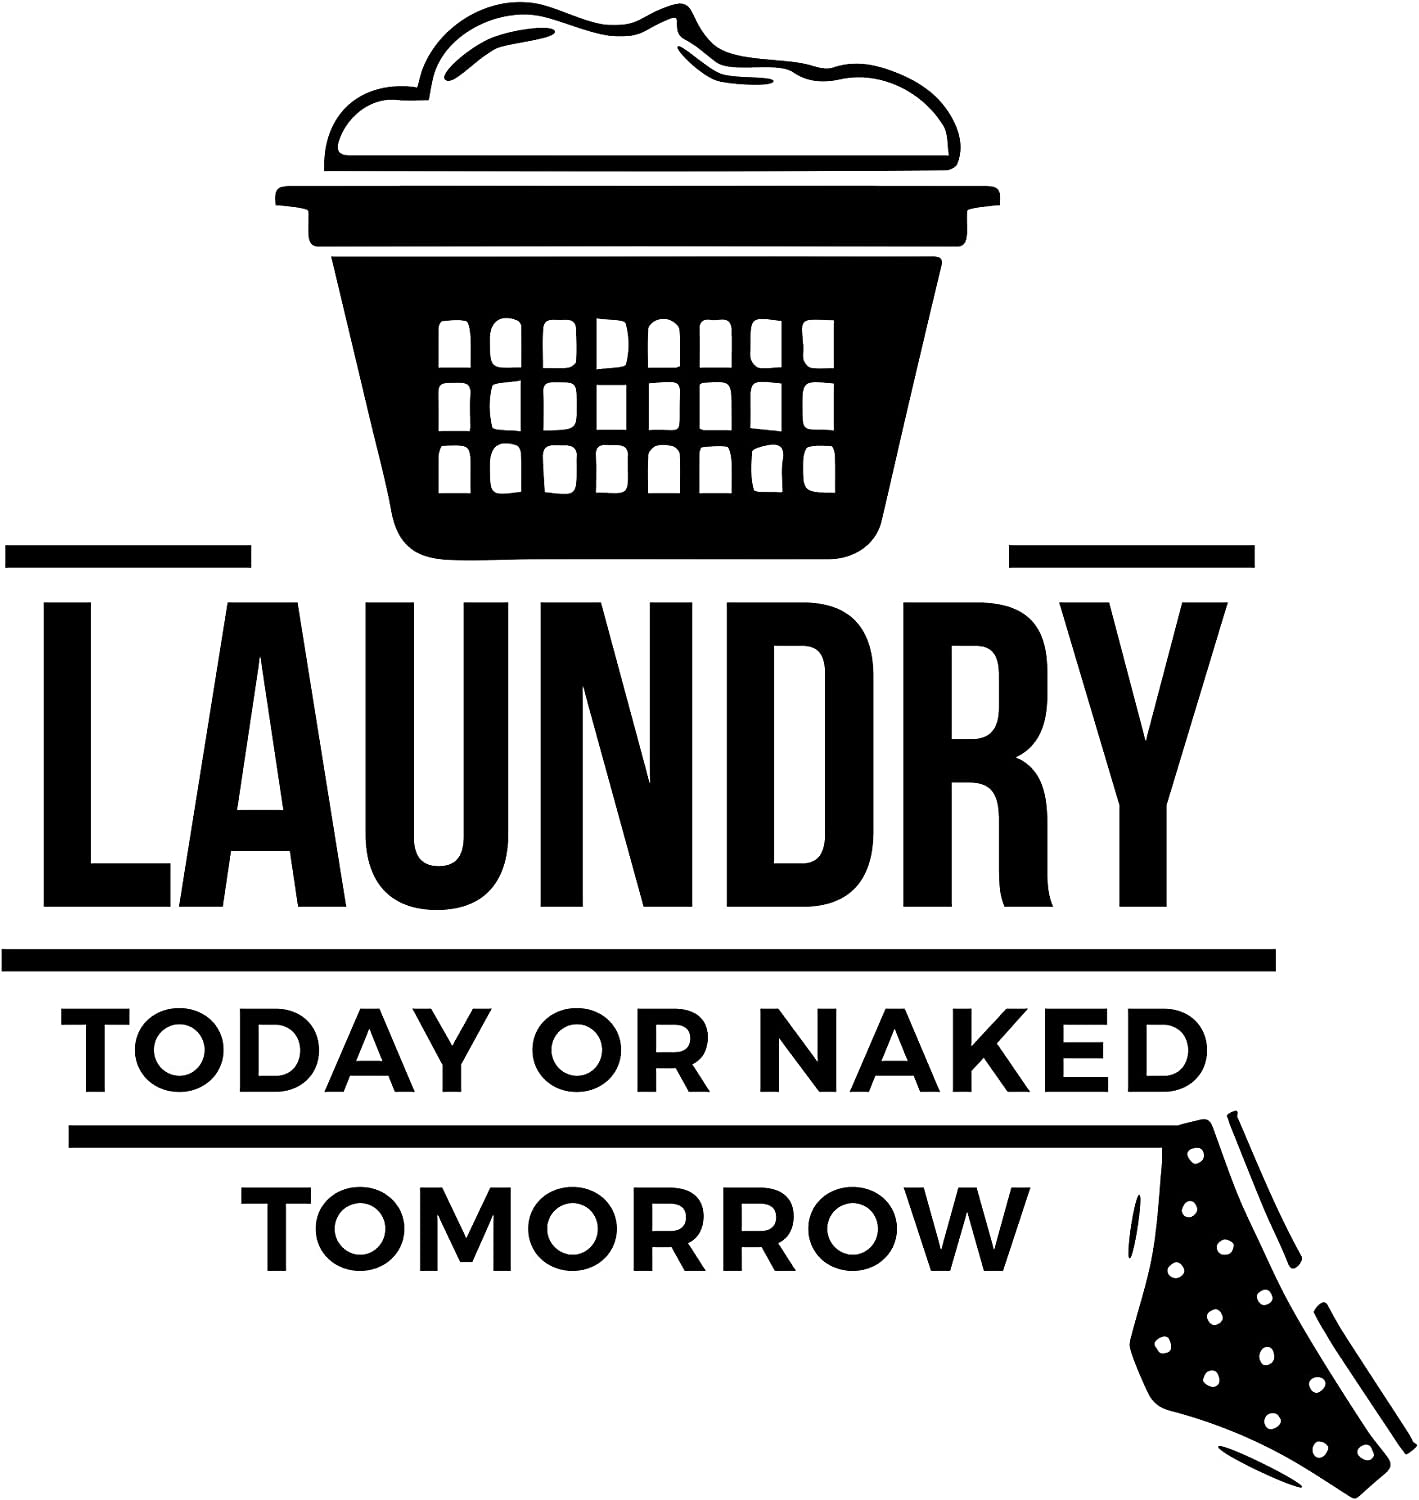 "Sign Depot Laundry Today Or Naked Tomorrow - 23"" x 24-1/4"" - Decorative Vinyl Wall Sticker"